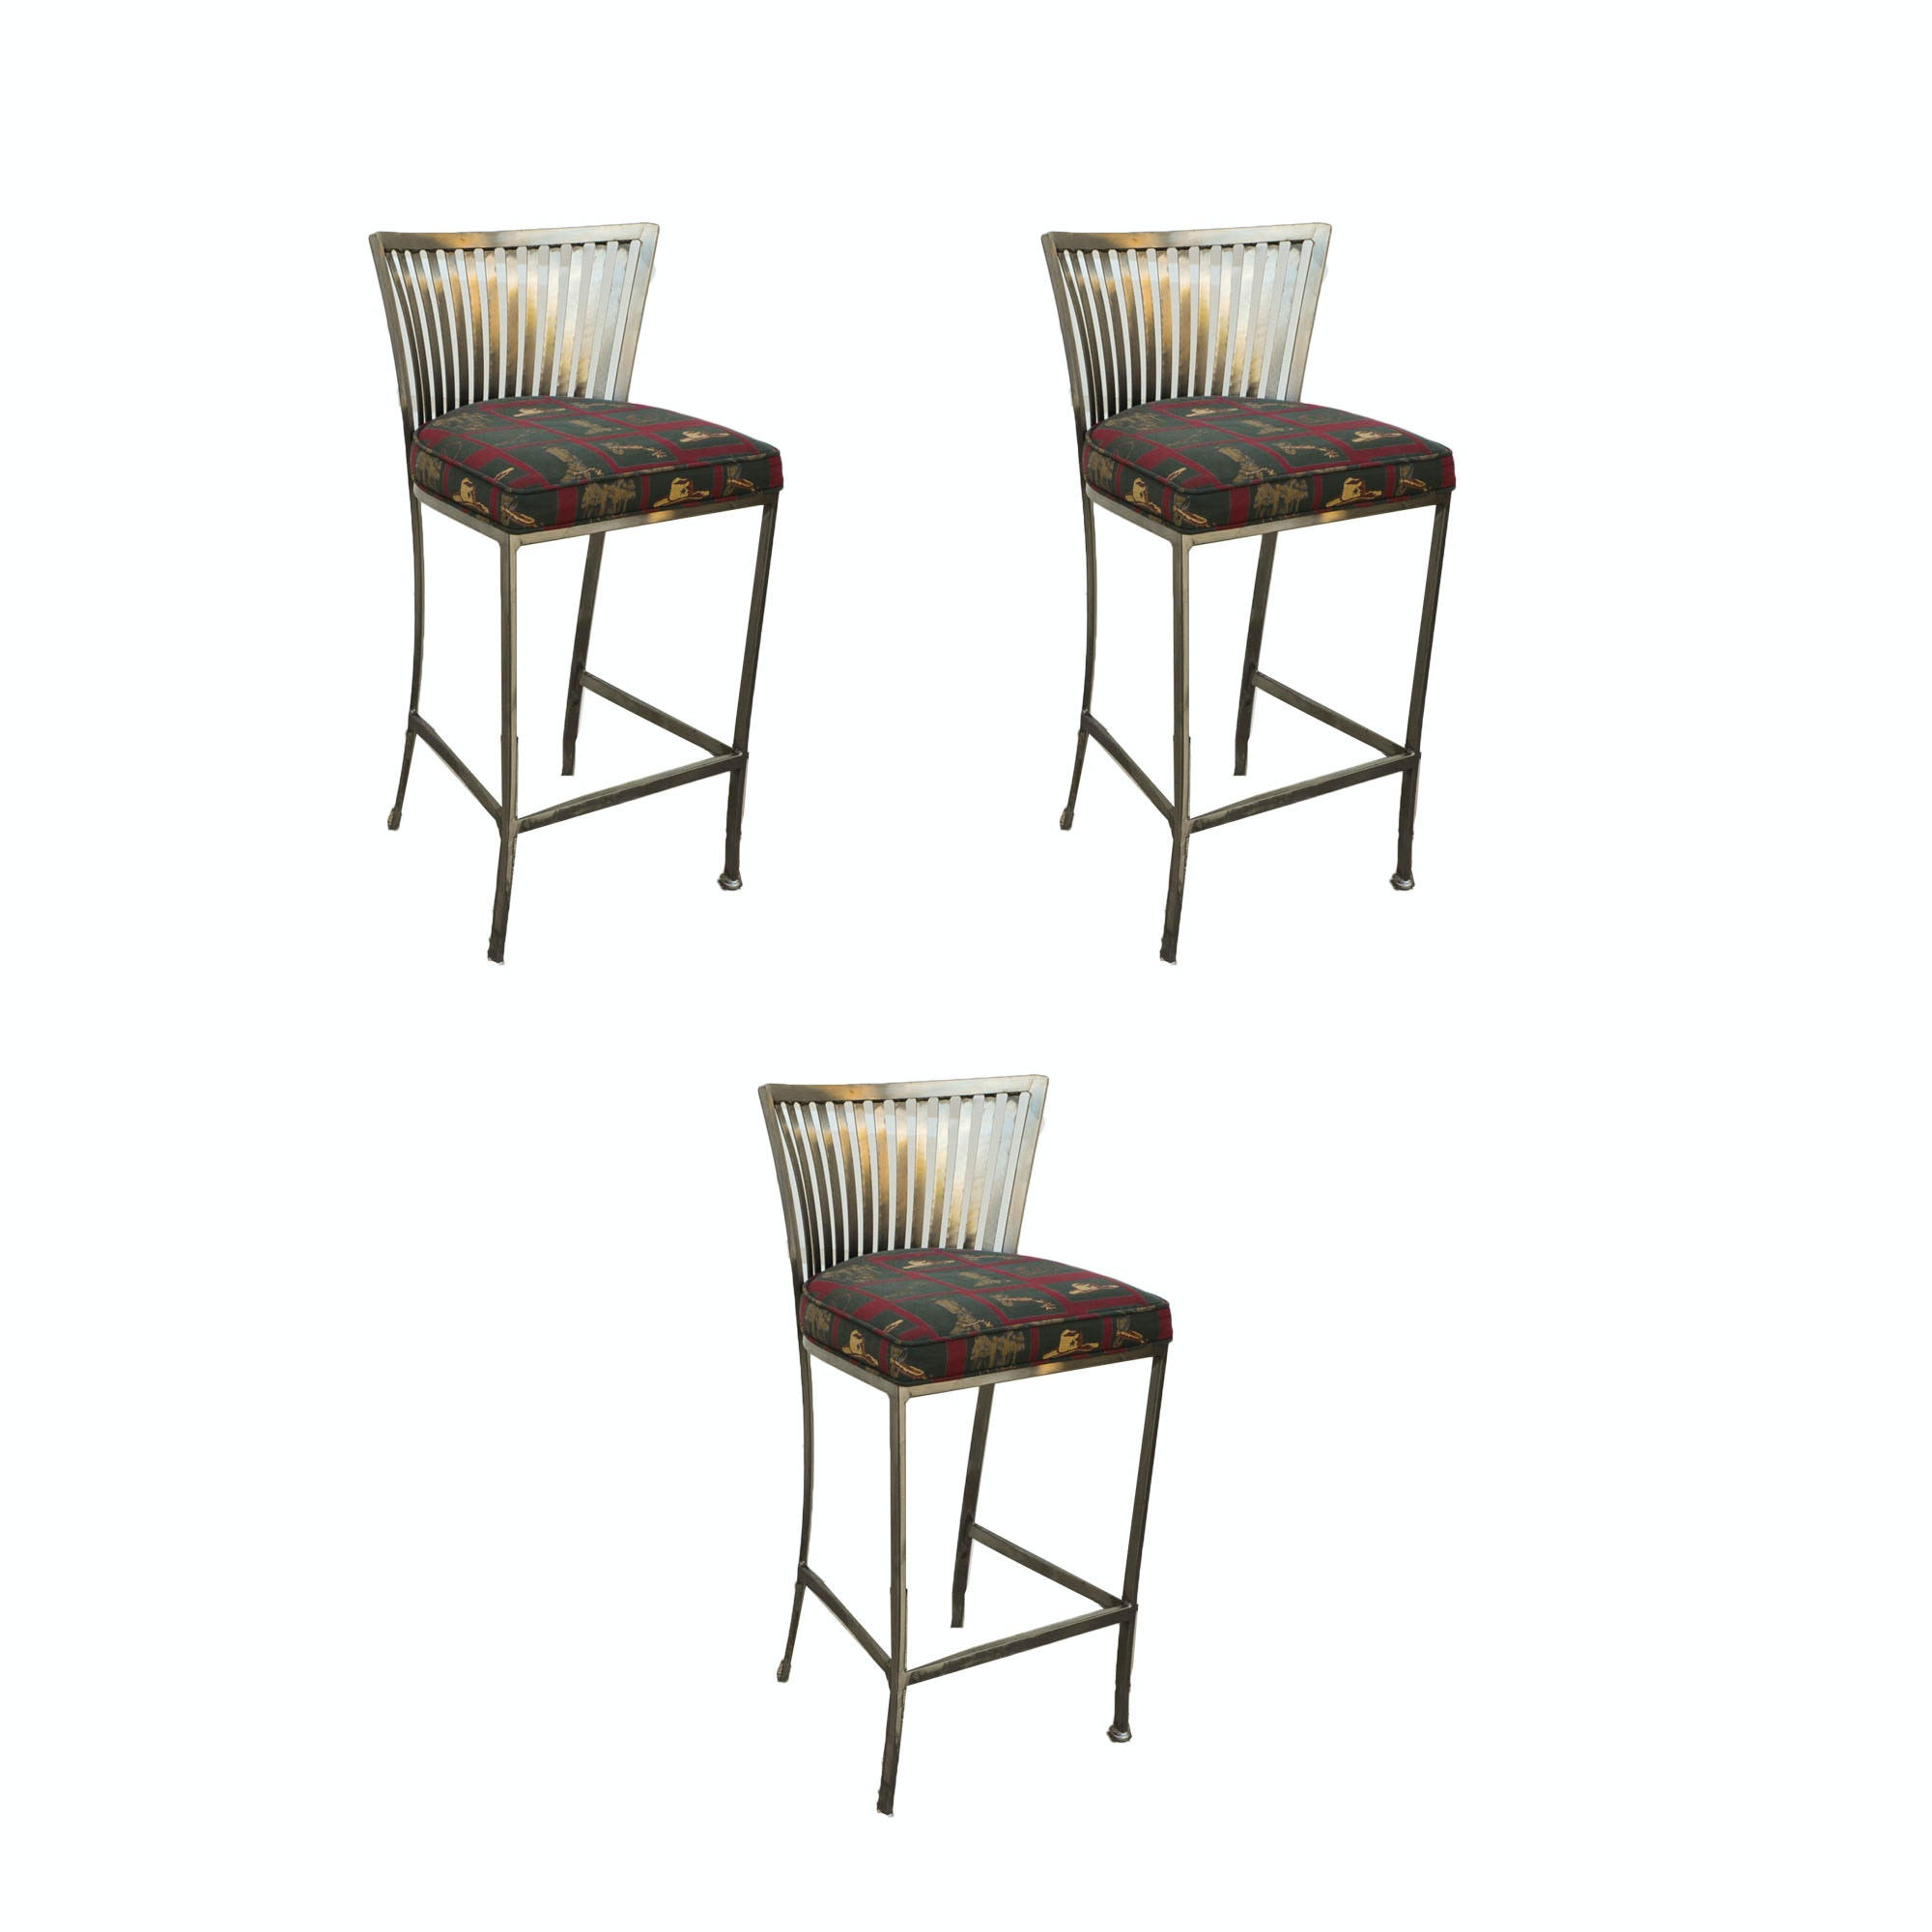 Mid Century Modern Style Barstools by Shaver-Howard, Inc.